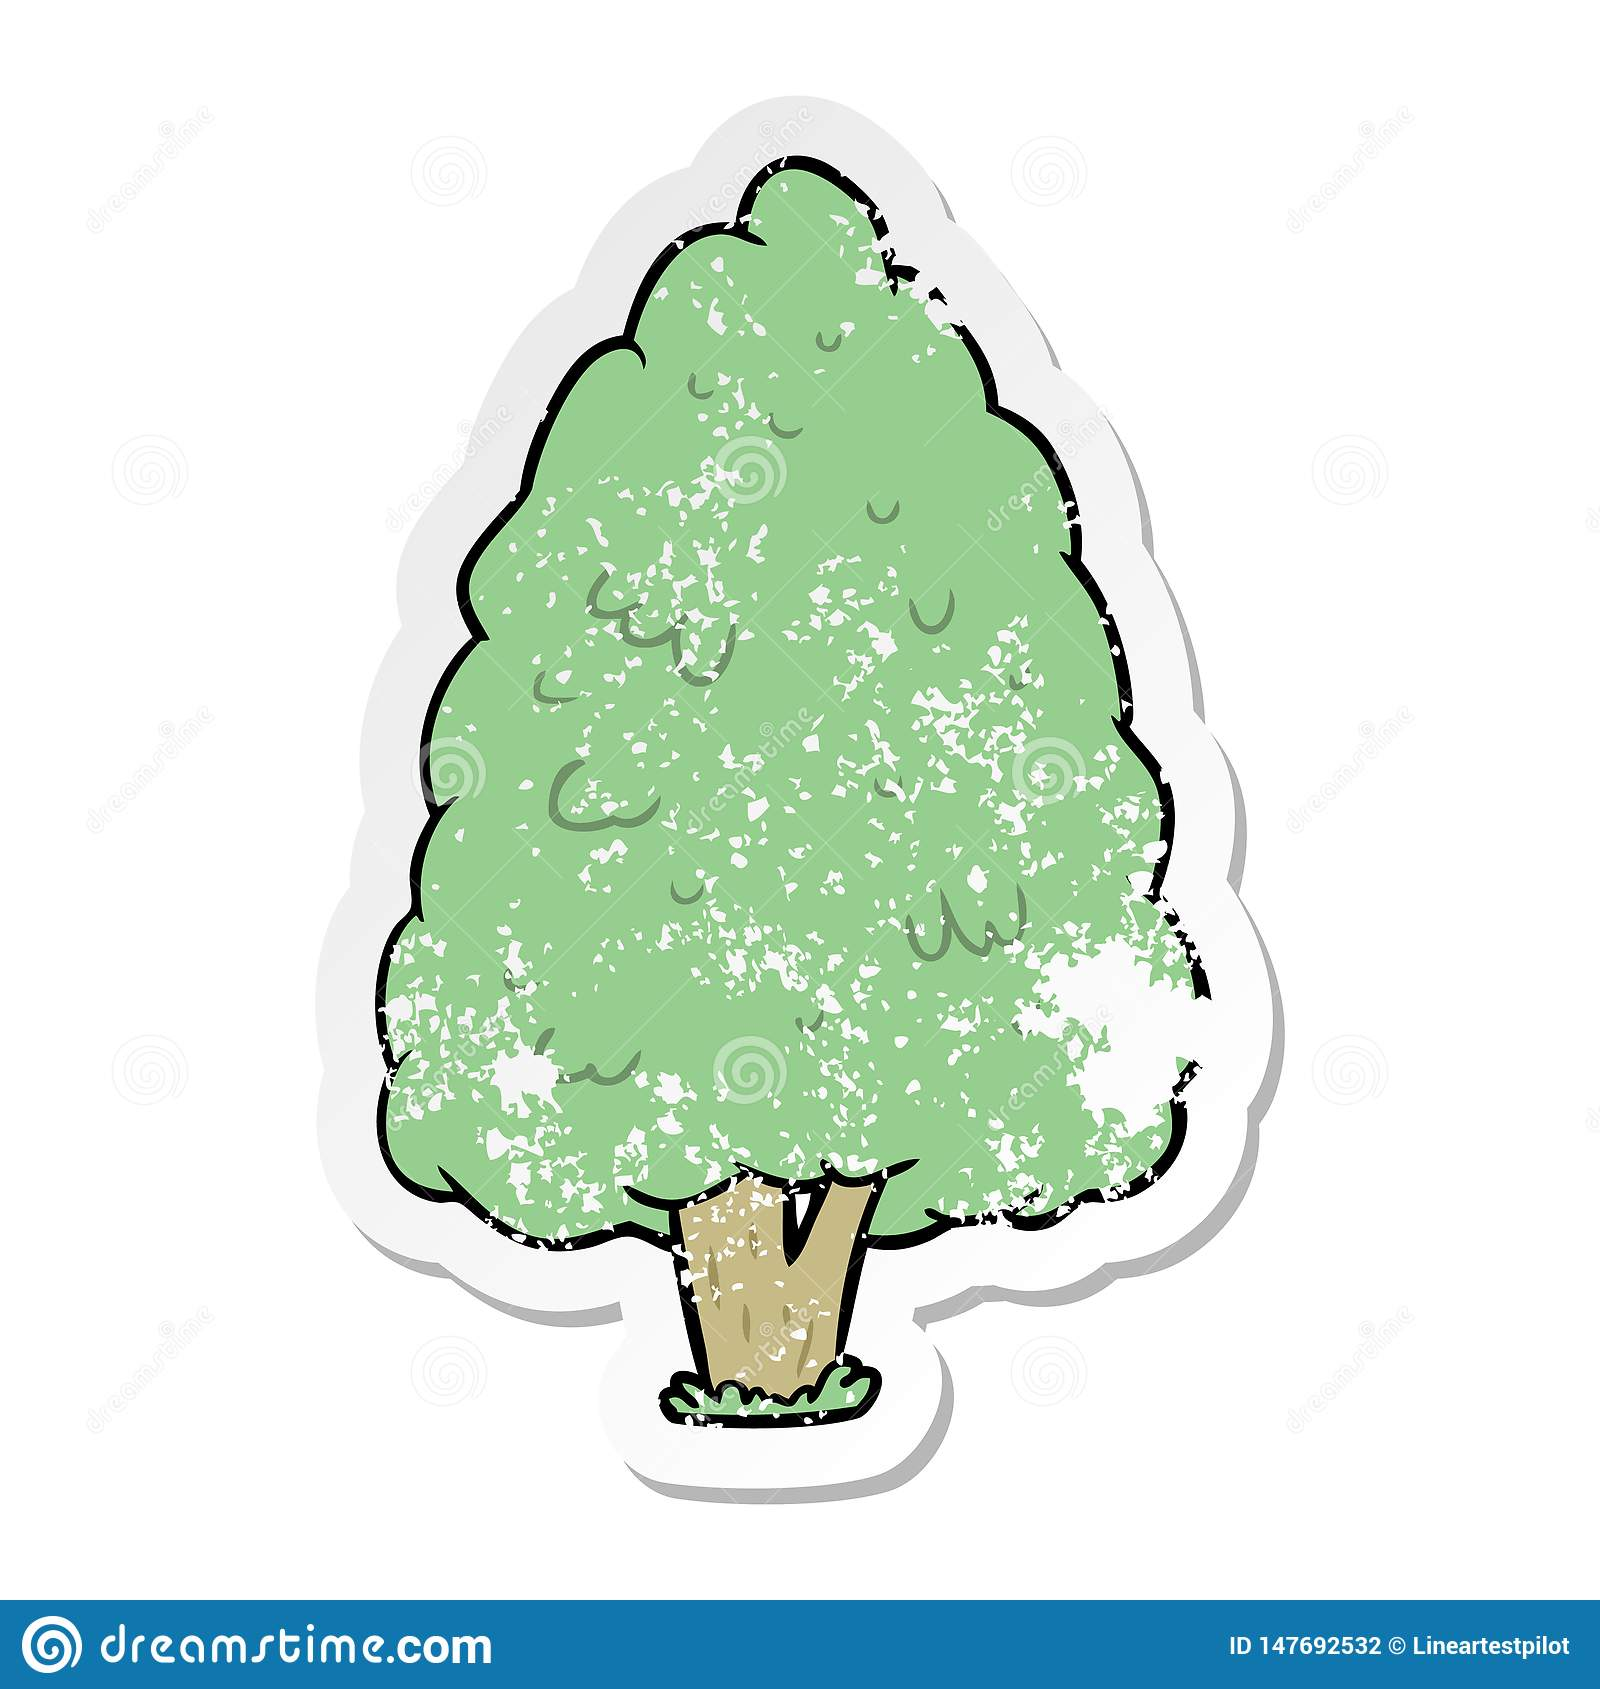 Distressed Sticker Of A Cartoon Tall Tree Stock Vector Illustration Of Realistic Doodle 147692532 Cartoon tree transparent images (6,688). dreamstime com